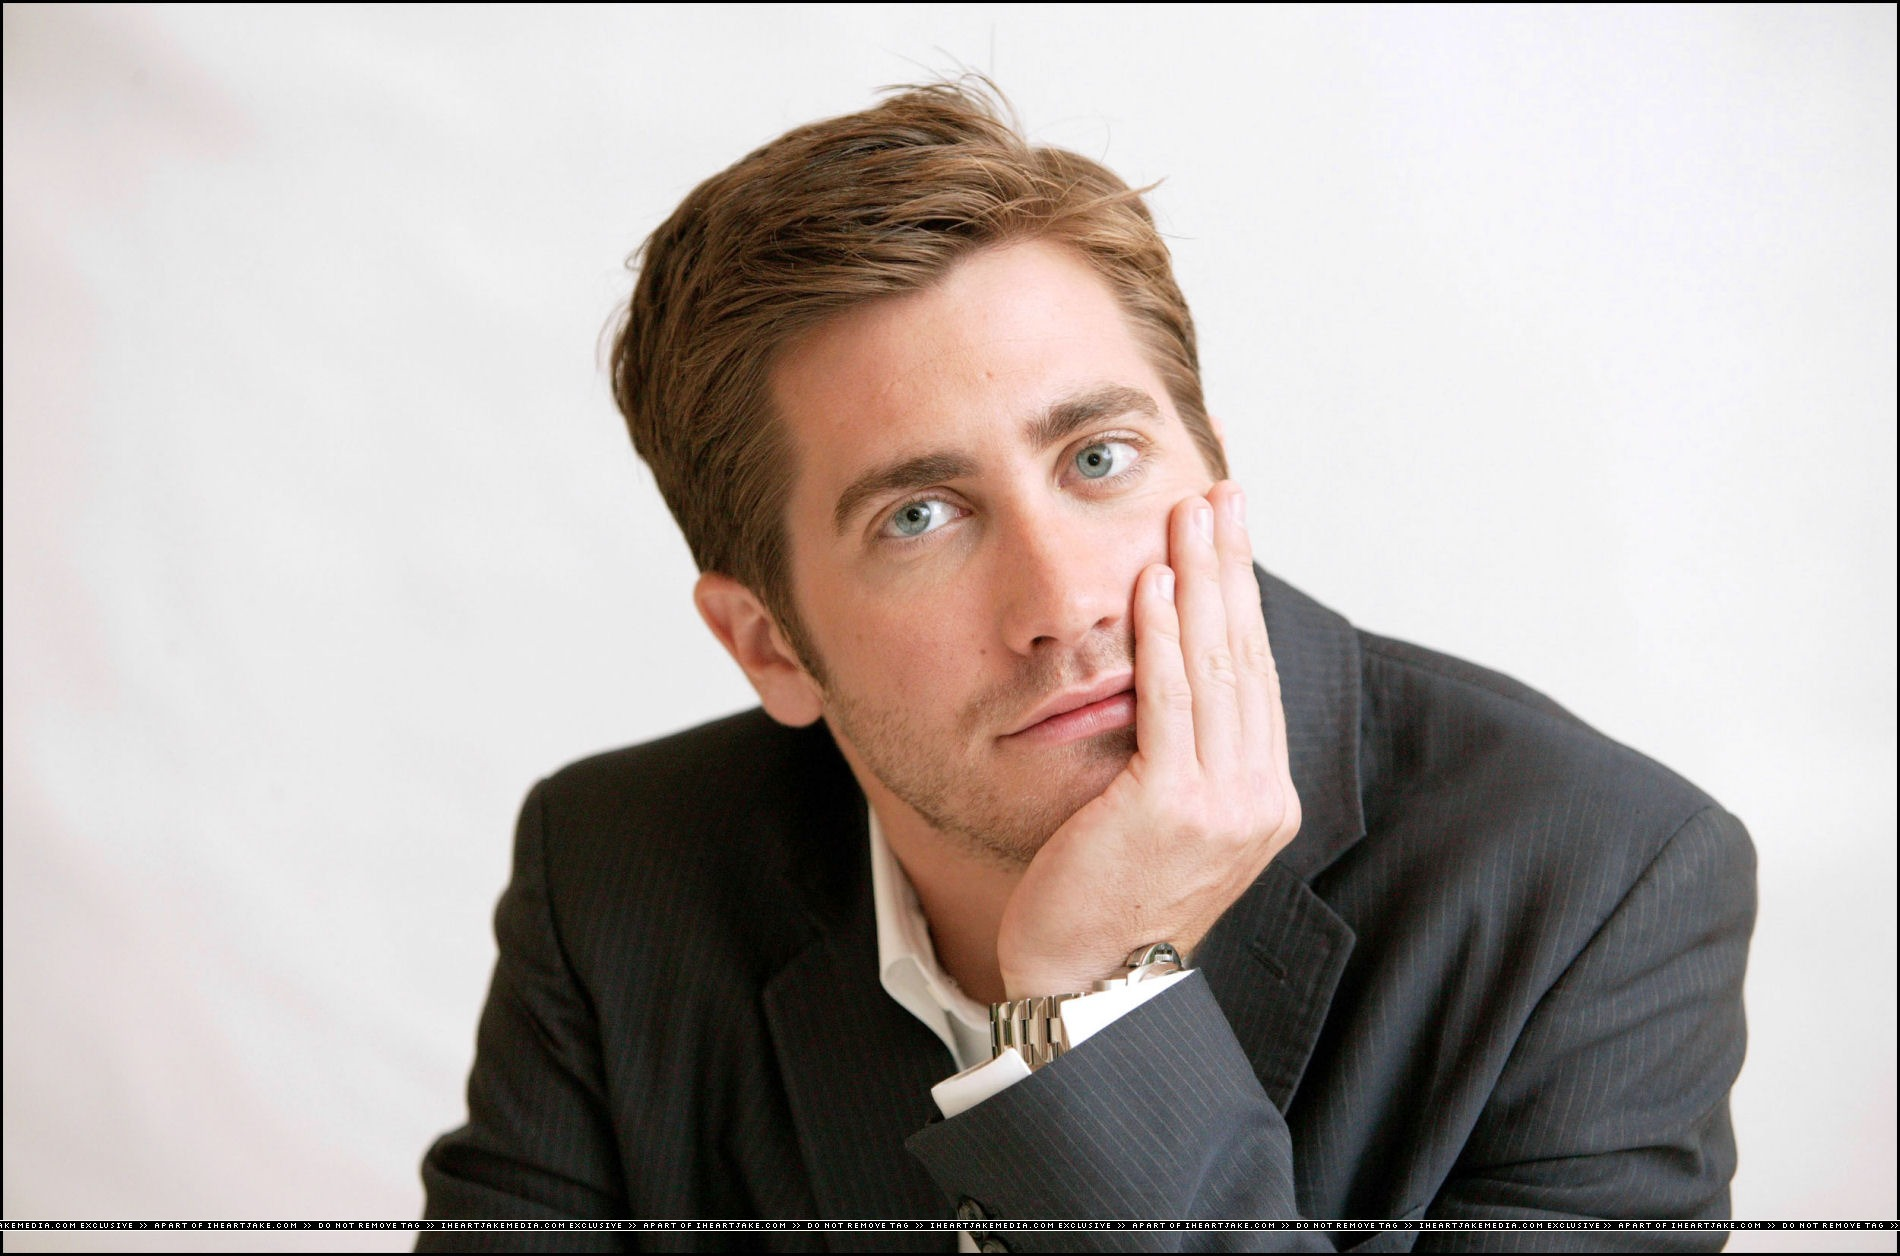 Jake Gyllenhaal - Jake Gyllenhaal Photo (27440804) - Fanpop - Page 10 Jake Gyllenhaal